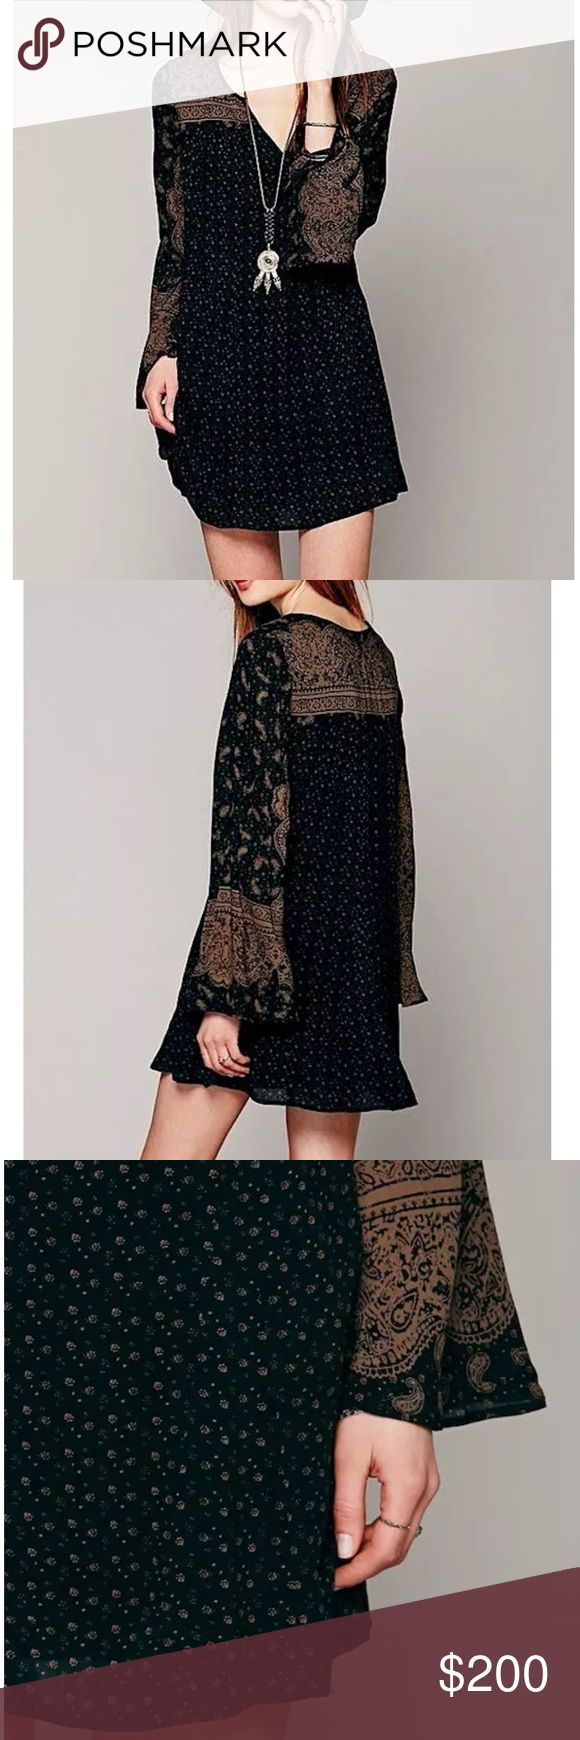 FREE PEOPLE Mini Dress Patterned Bohemian Classic Size Small. New Without Tags. $128 MSRP + Tax.  • Beautiful mini dress featuring an effortless silhouette & long flared bell sleeves. • Dark gray in color with muted tan (almost-brown) tones mixed throughout. • Printed geometric design & with split v-neckline. • Self-lined with a sleeveless mini dress. • Lightweight, swingy, soft. • Rayon. • Imported.   {Southern Girl Fashion - Closet Policy}  ✔️ Same-Business-Day Shipping (10am CT). ✔️ Price…